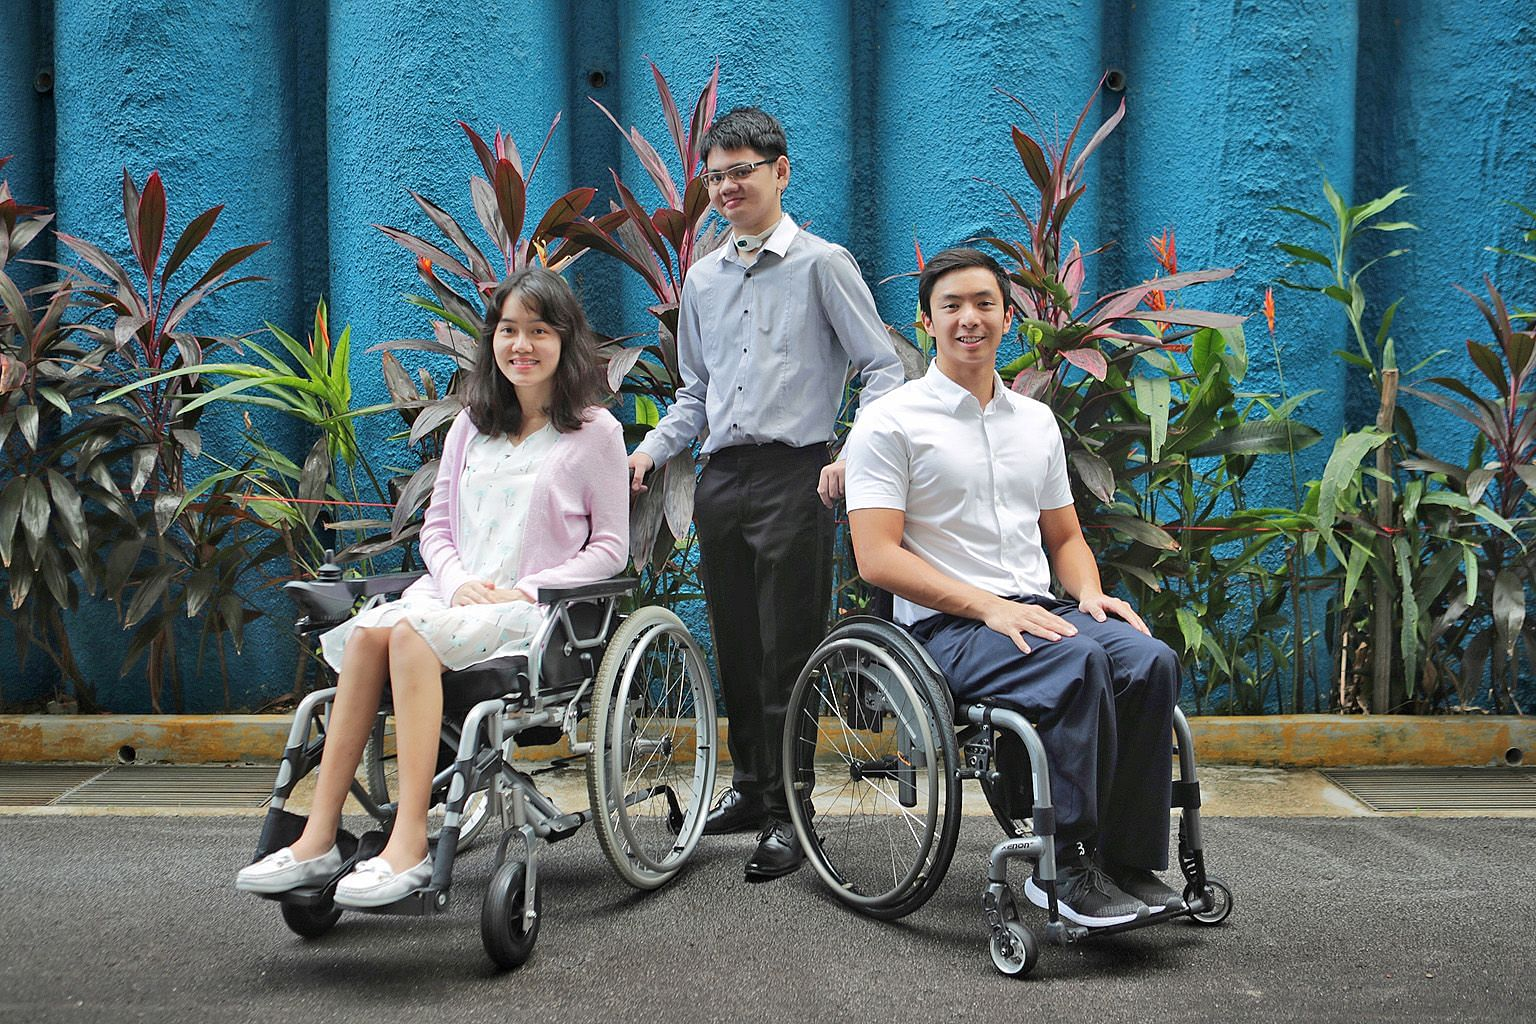 Mr Samuel Lim, flanked by Ms Foo Xu Hui and Mr Toh Wei Soong, breathes and eats through two tubes and has a speech impairment. The three students are among this year's four recipients of the Asia Pacific Breweries Foundation Scholarship for Persons w